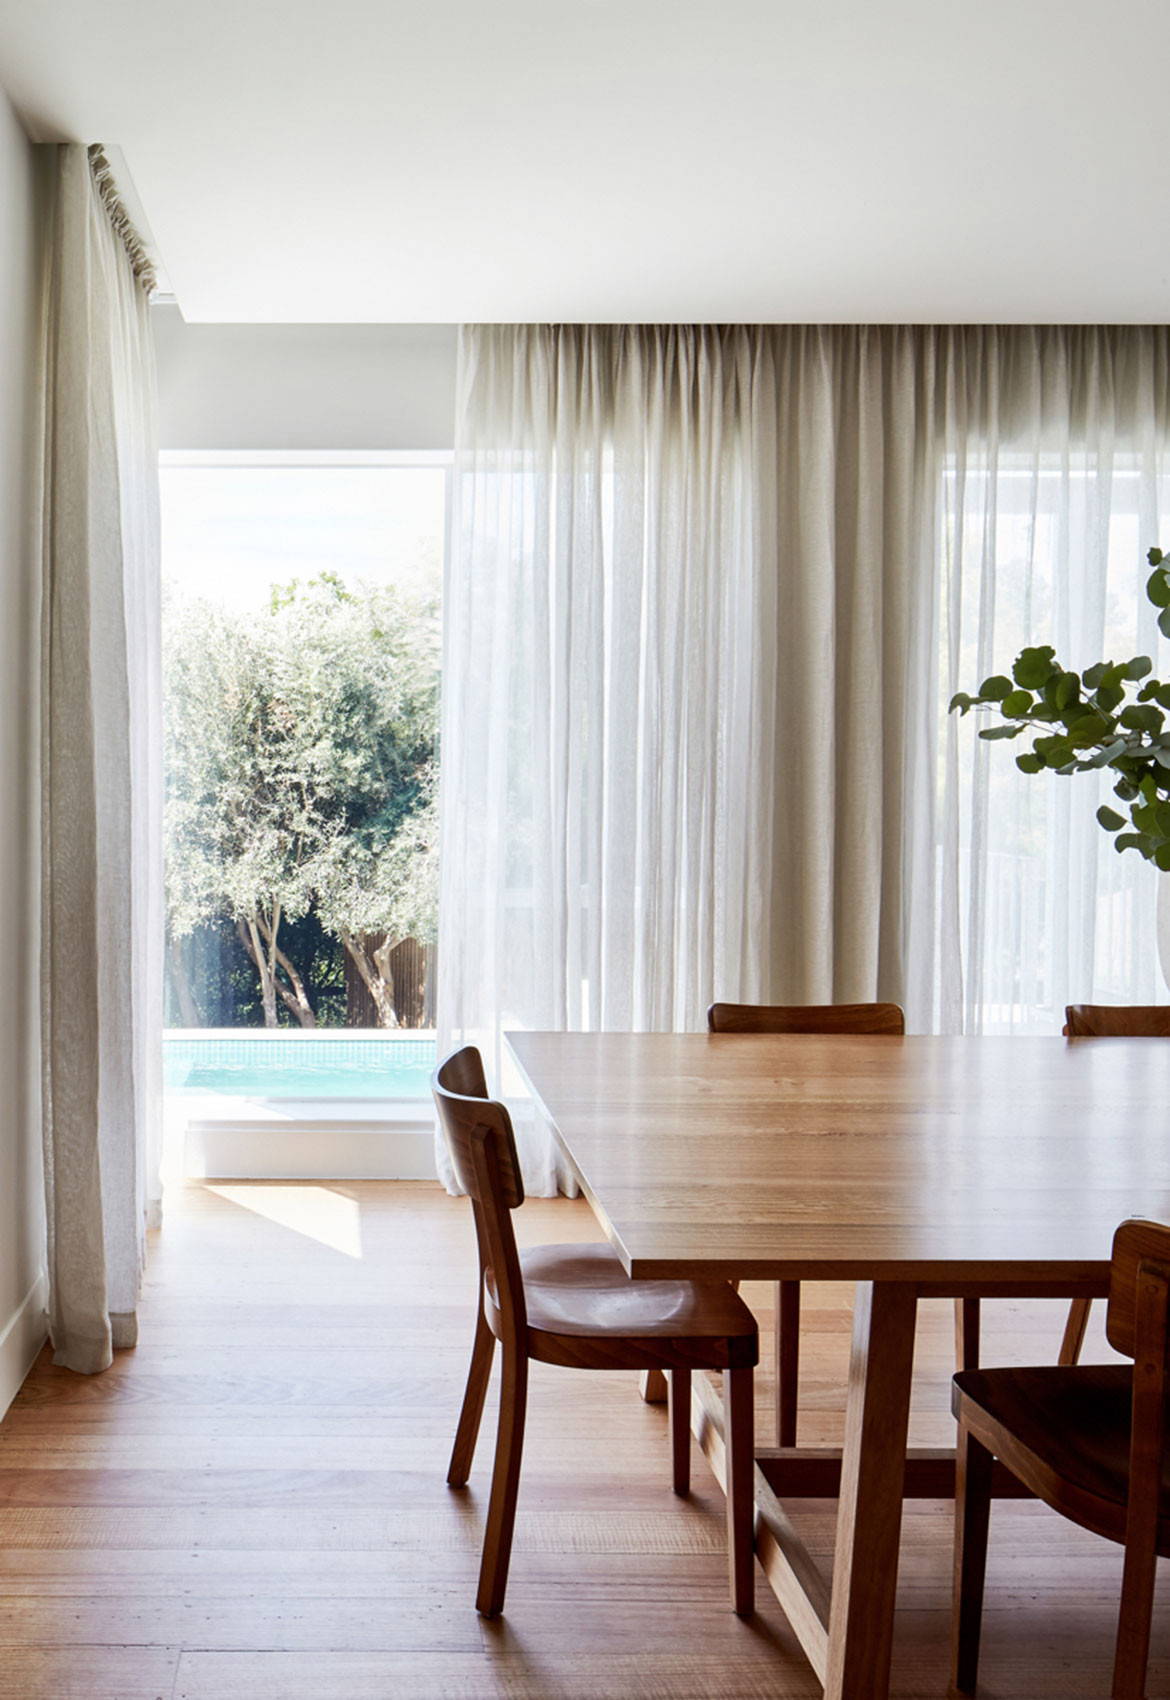 Holroyd Court Foomann Architects cc Willem Dirk du Toit formal dining